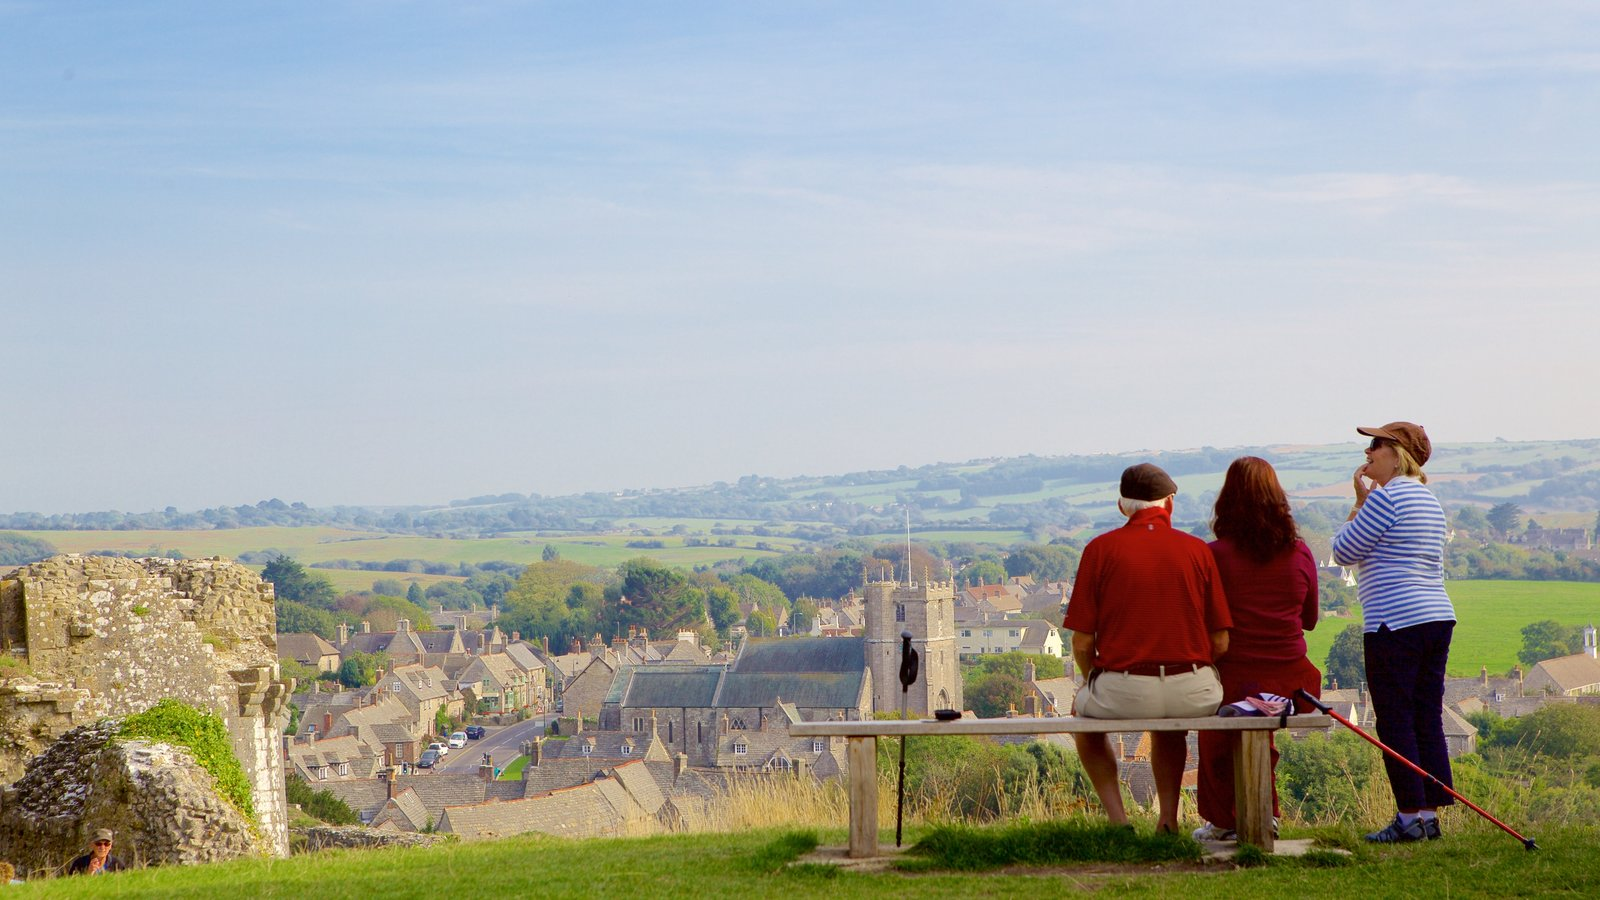 Corfe Castle featuring a small town or village as well as a small group of people